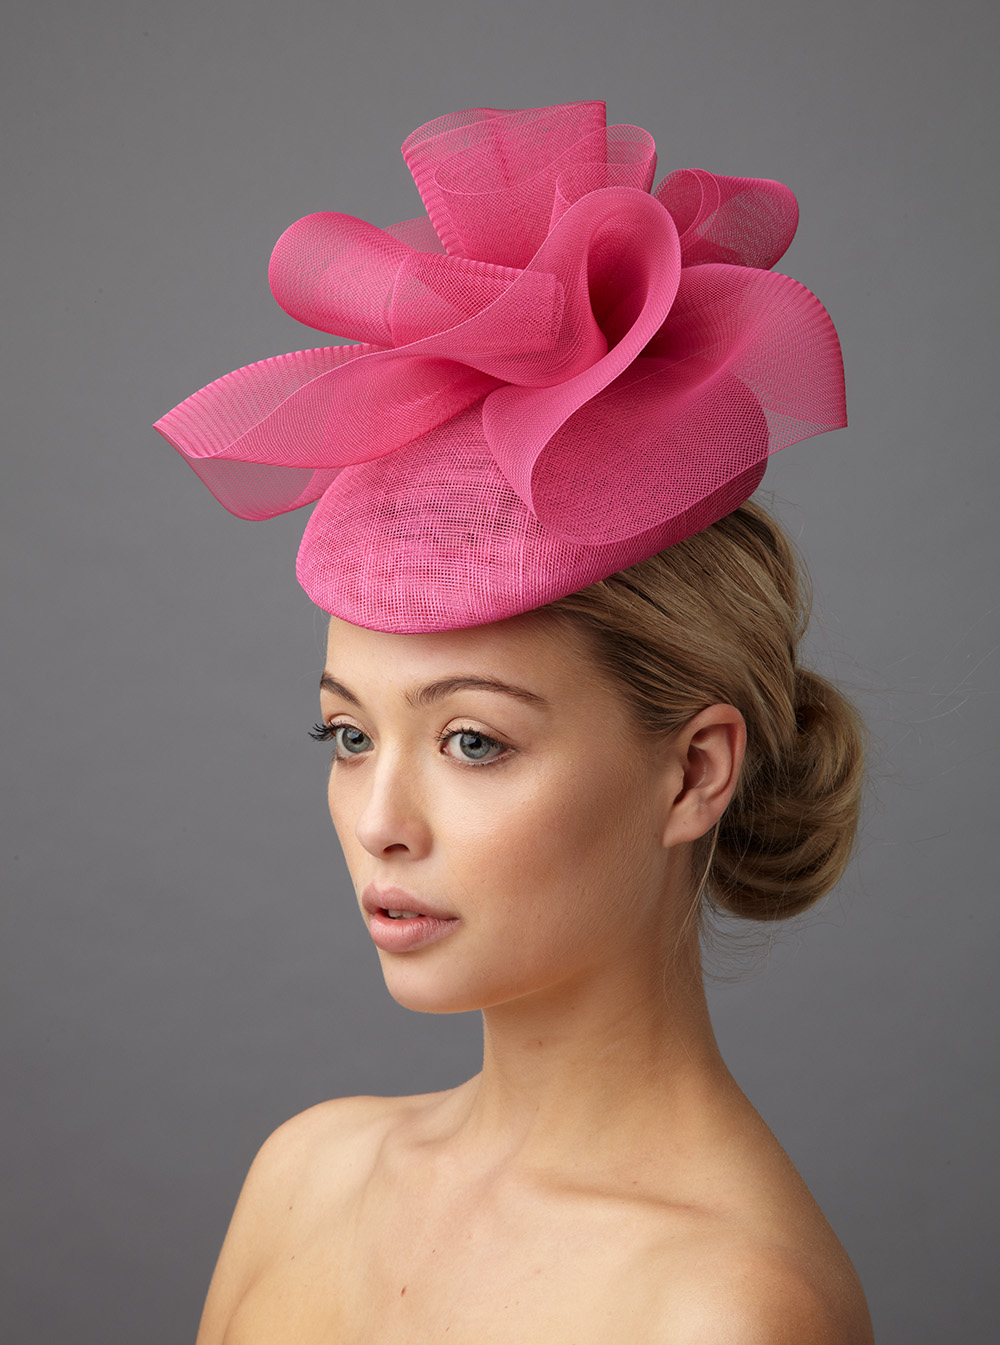 Bacall pillbox hat by Hostie Hats